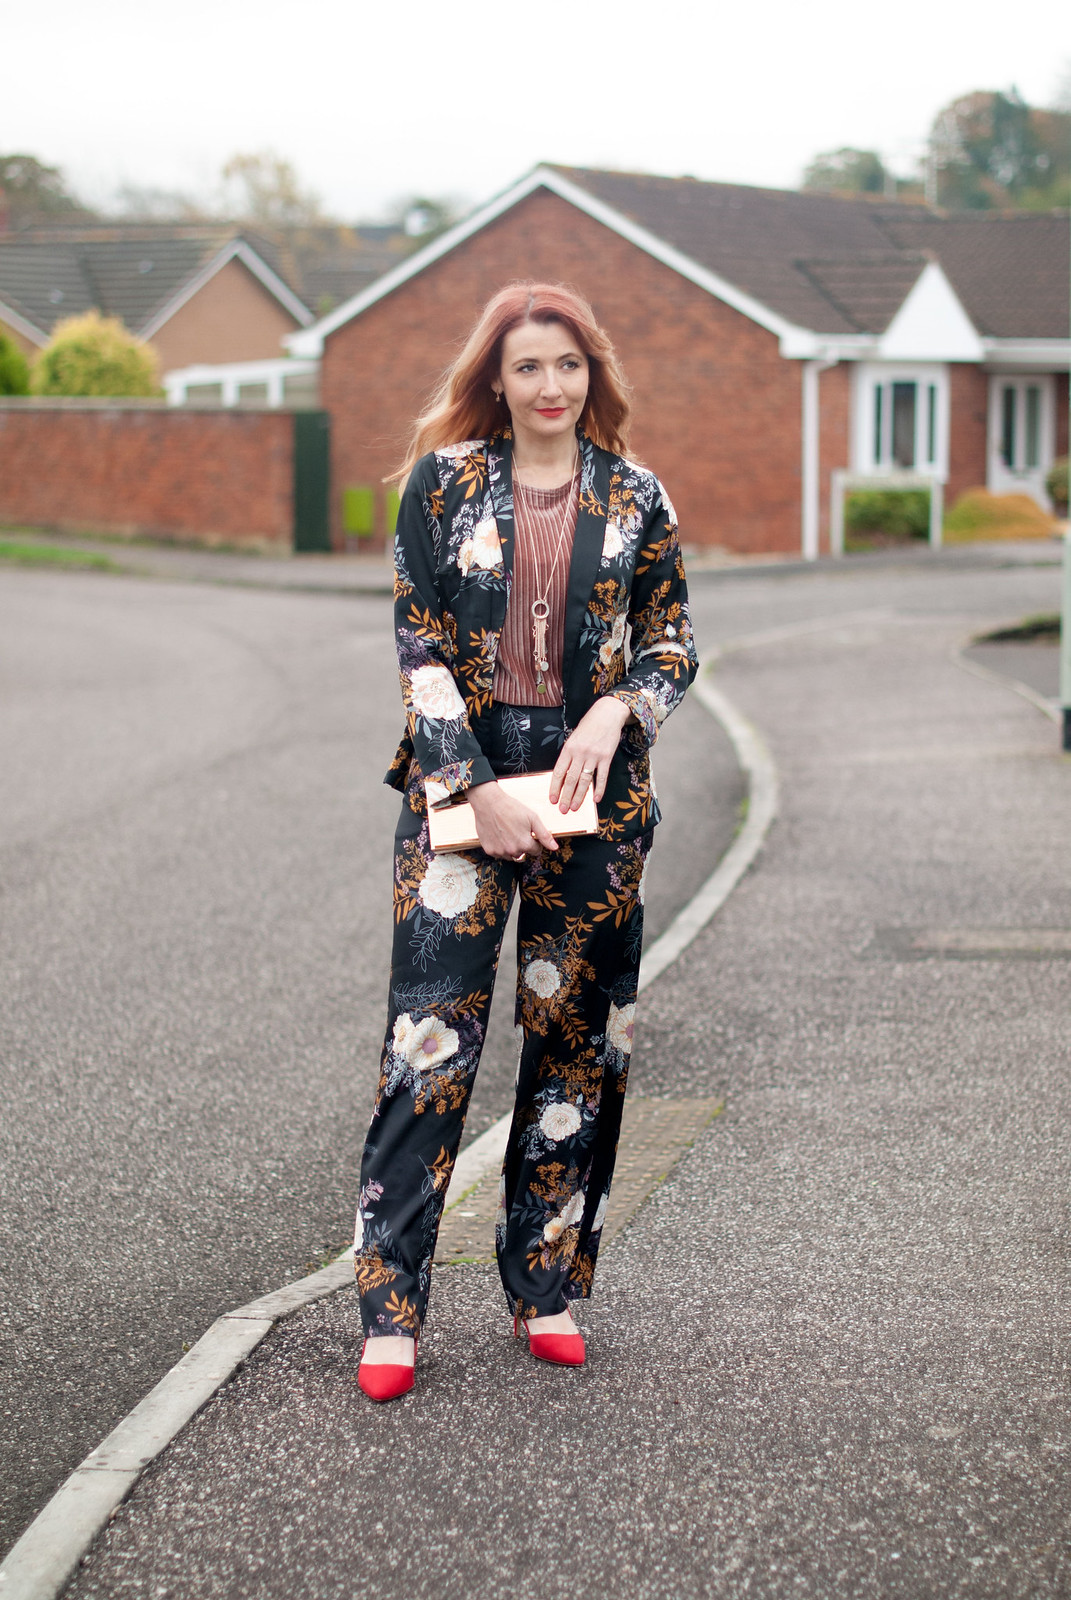 Floral pyjama pajama-style suit, Christmas party outfit: Trouser/pants suit with red heels, pink velvet top and gold mirror clutch | Not Dressed As Lamb, over 40 fashion